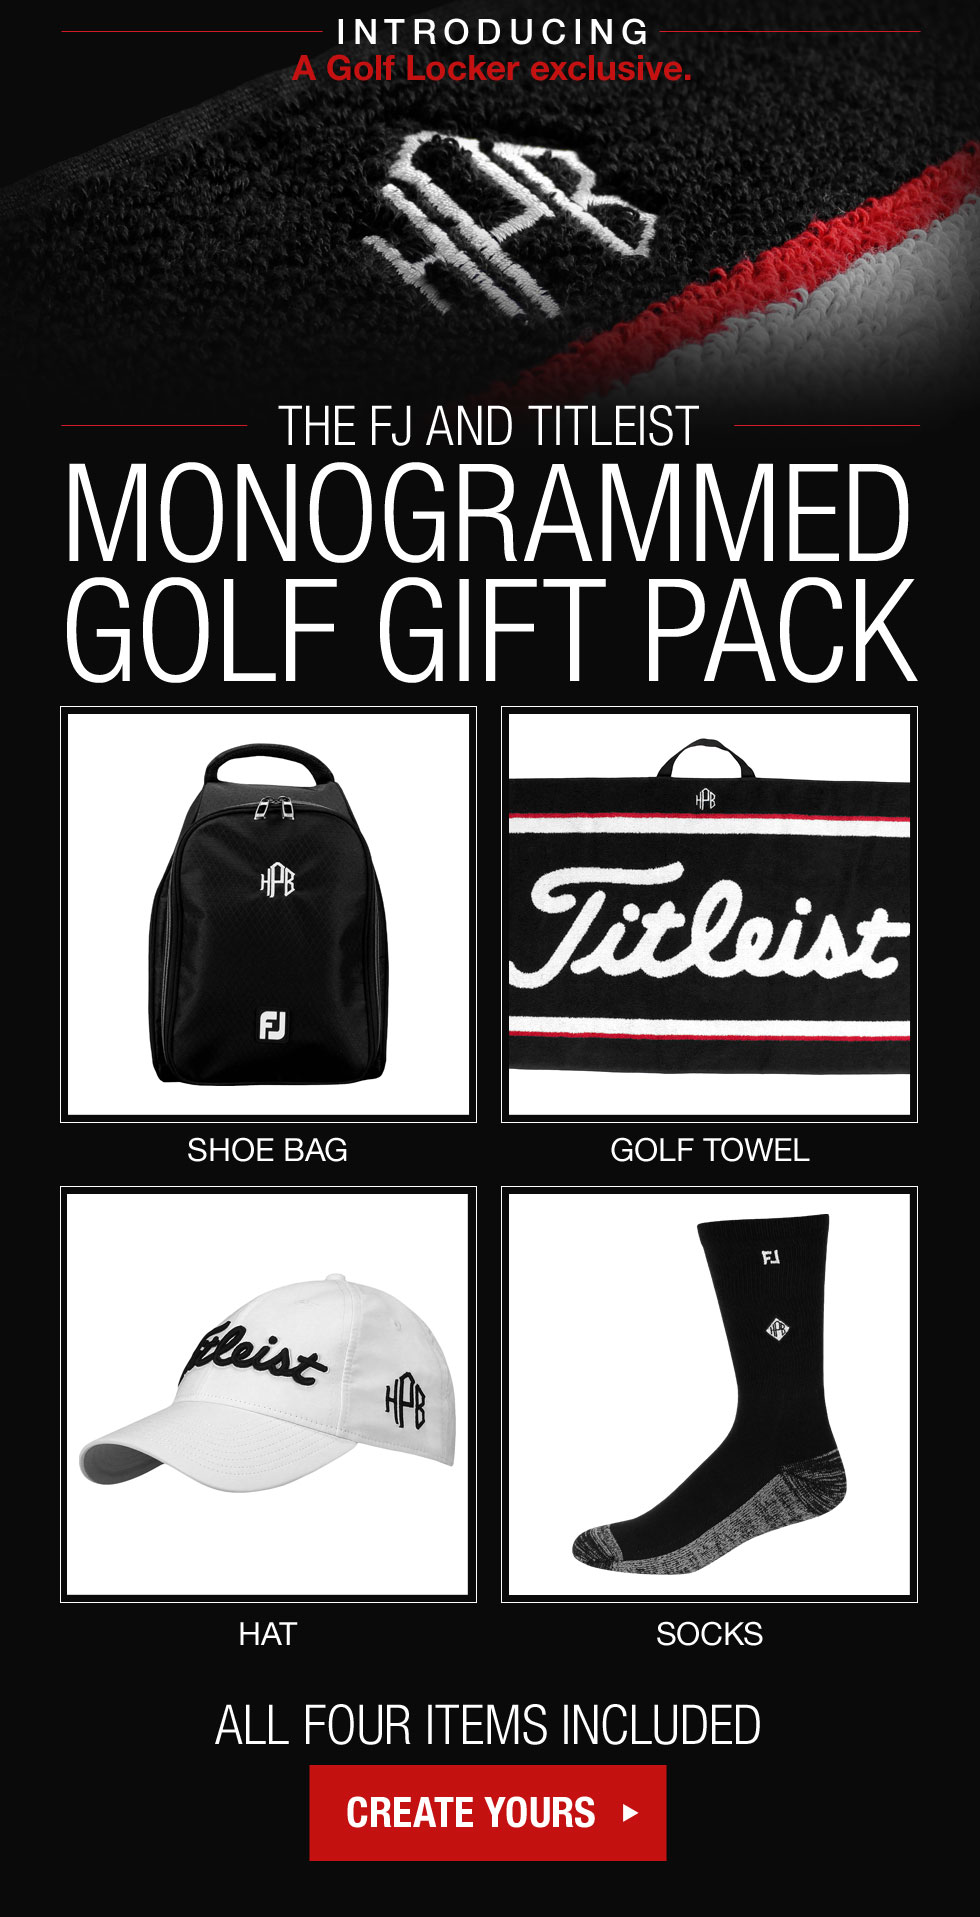 The Titleist and FJ Monogrammed Gift Pack - a Golf Locker Exclusive.